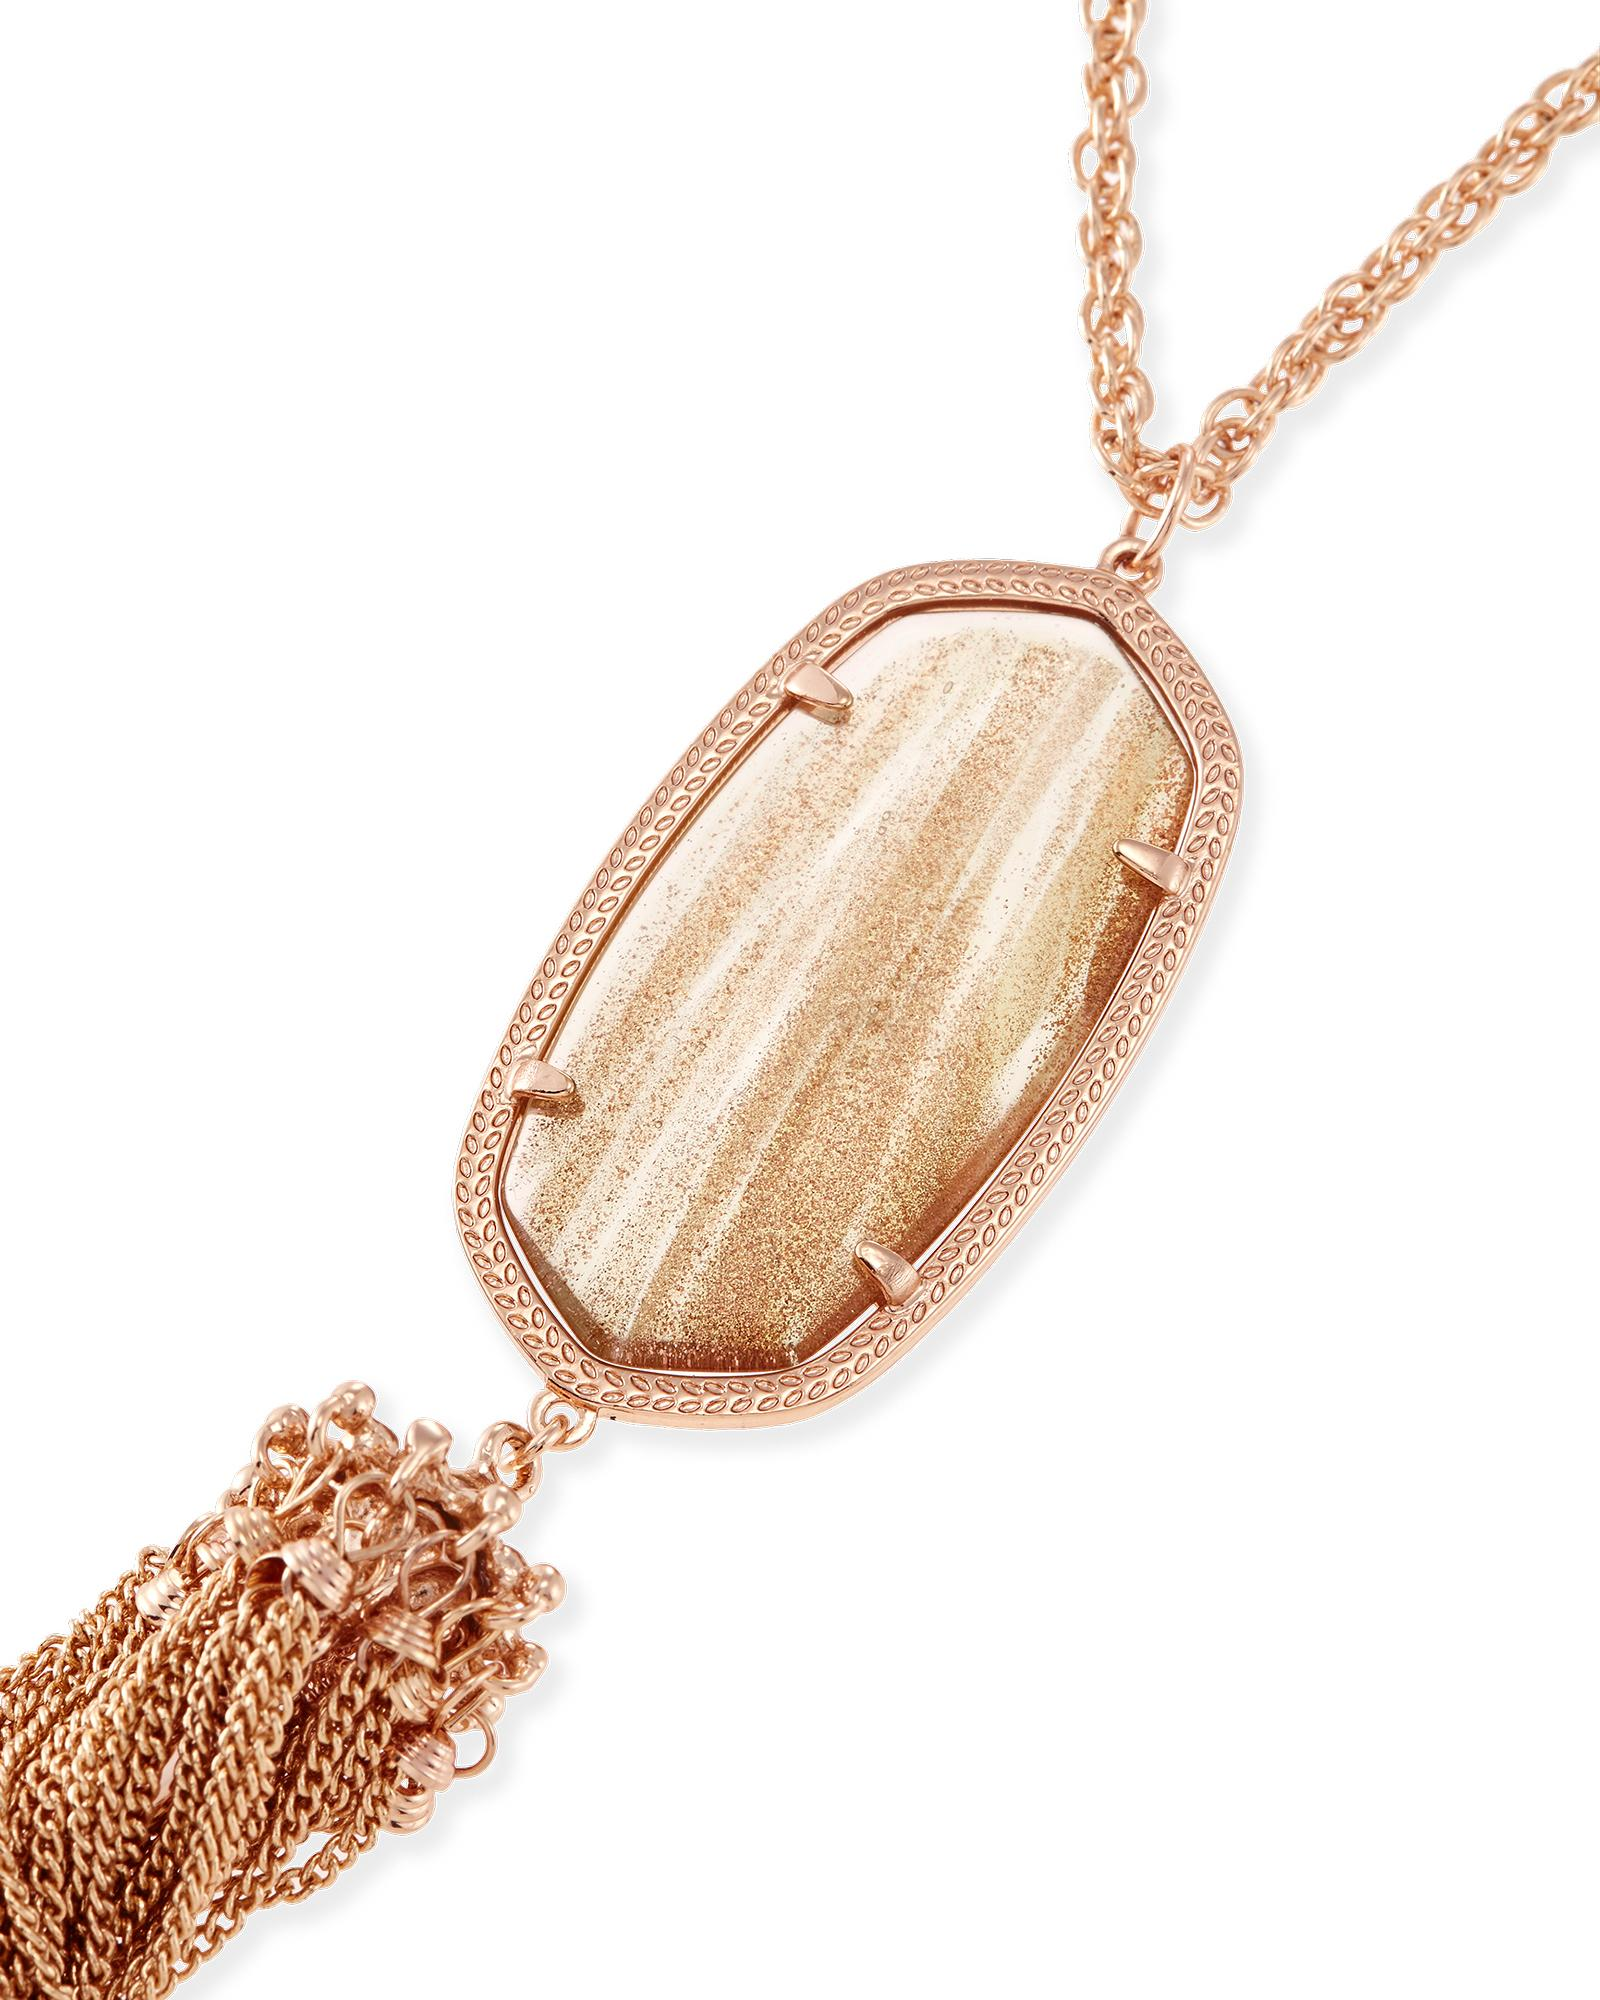 Rayne Long Necklace in Gold Dusted Glass